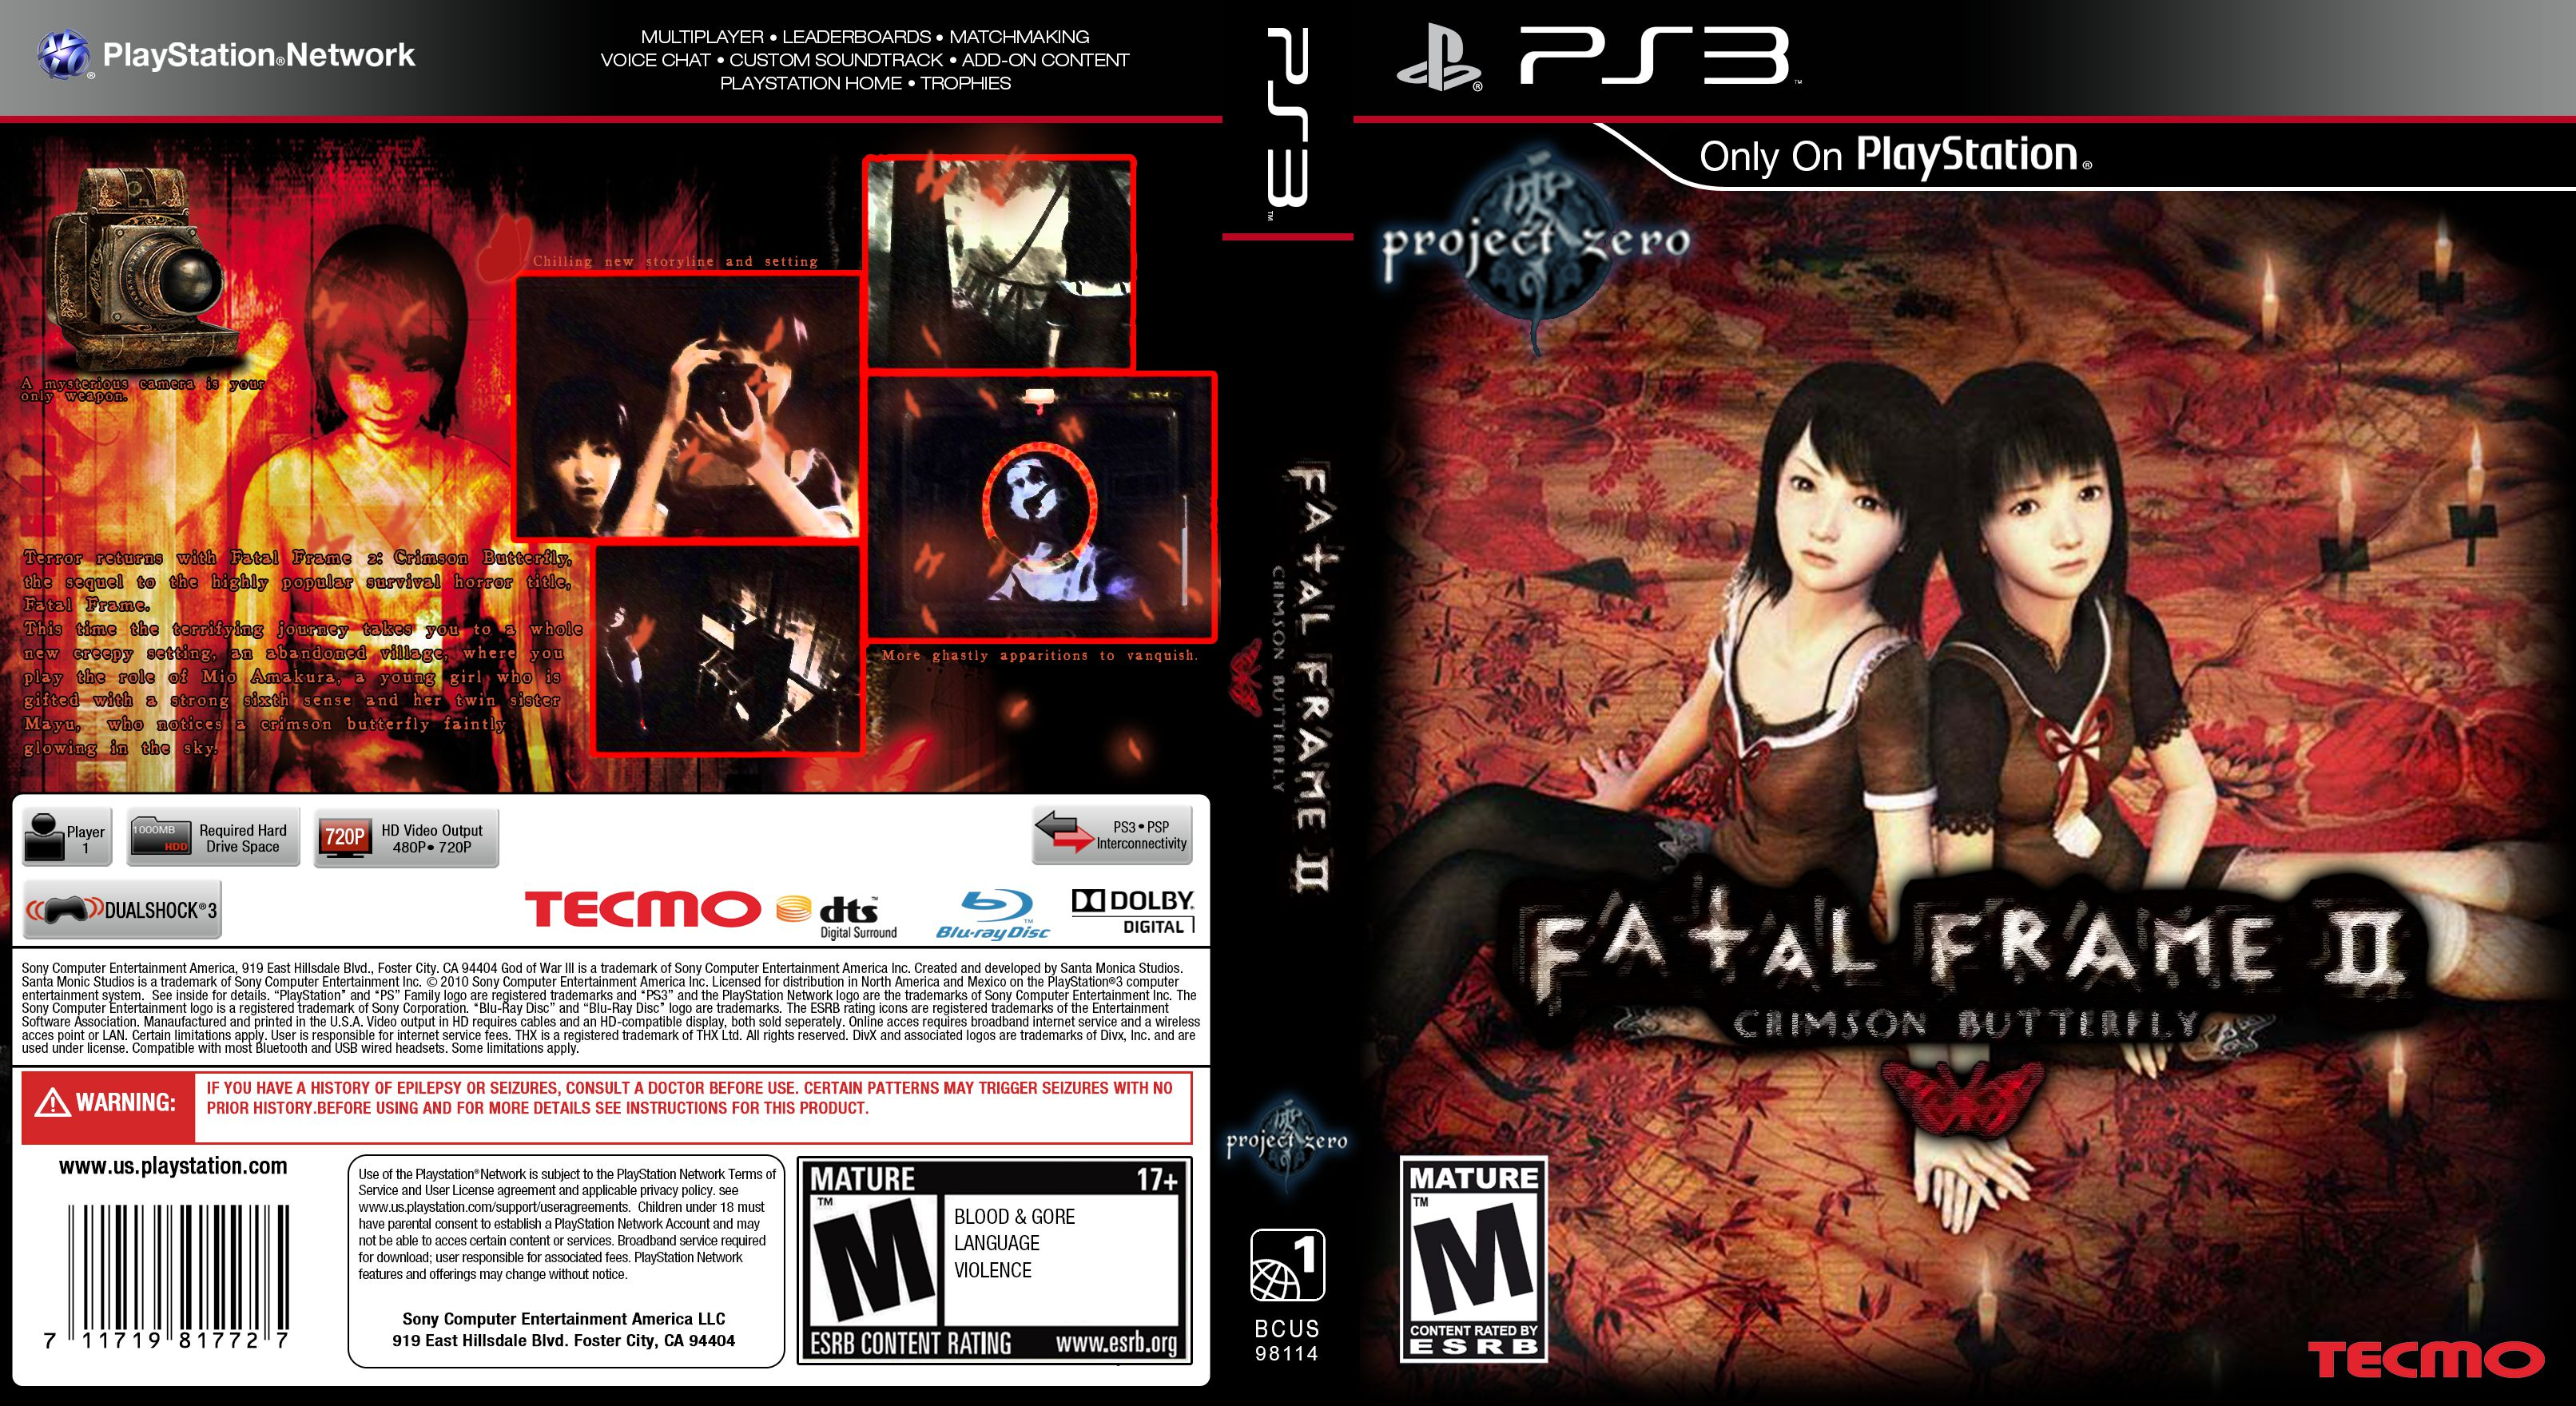 Fatal Frame 2 Crimson Butterfly PS3 COVER | World Cover